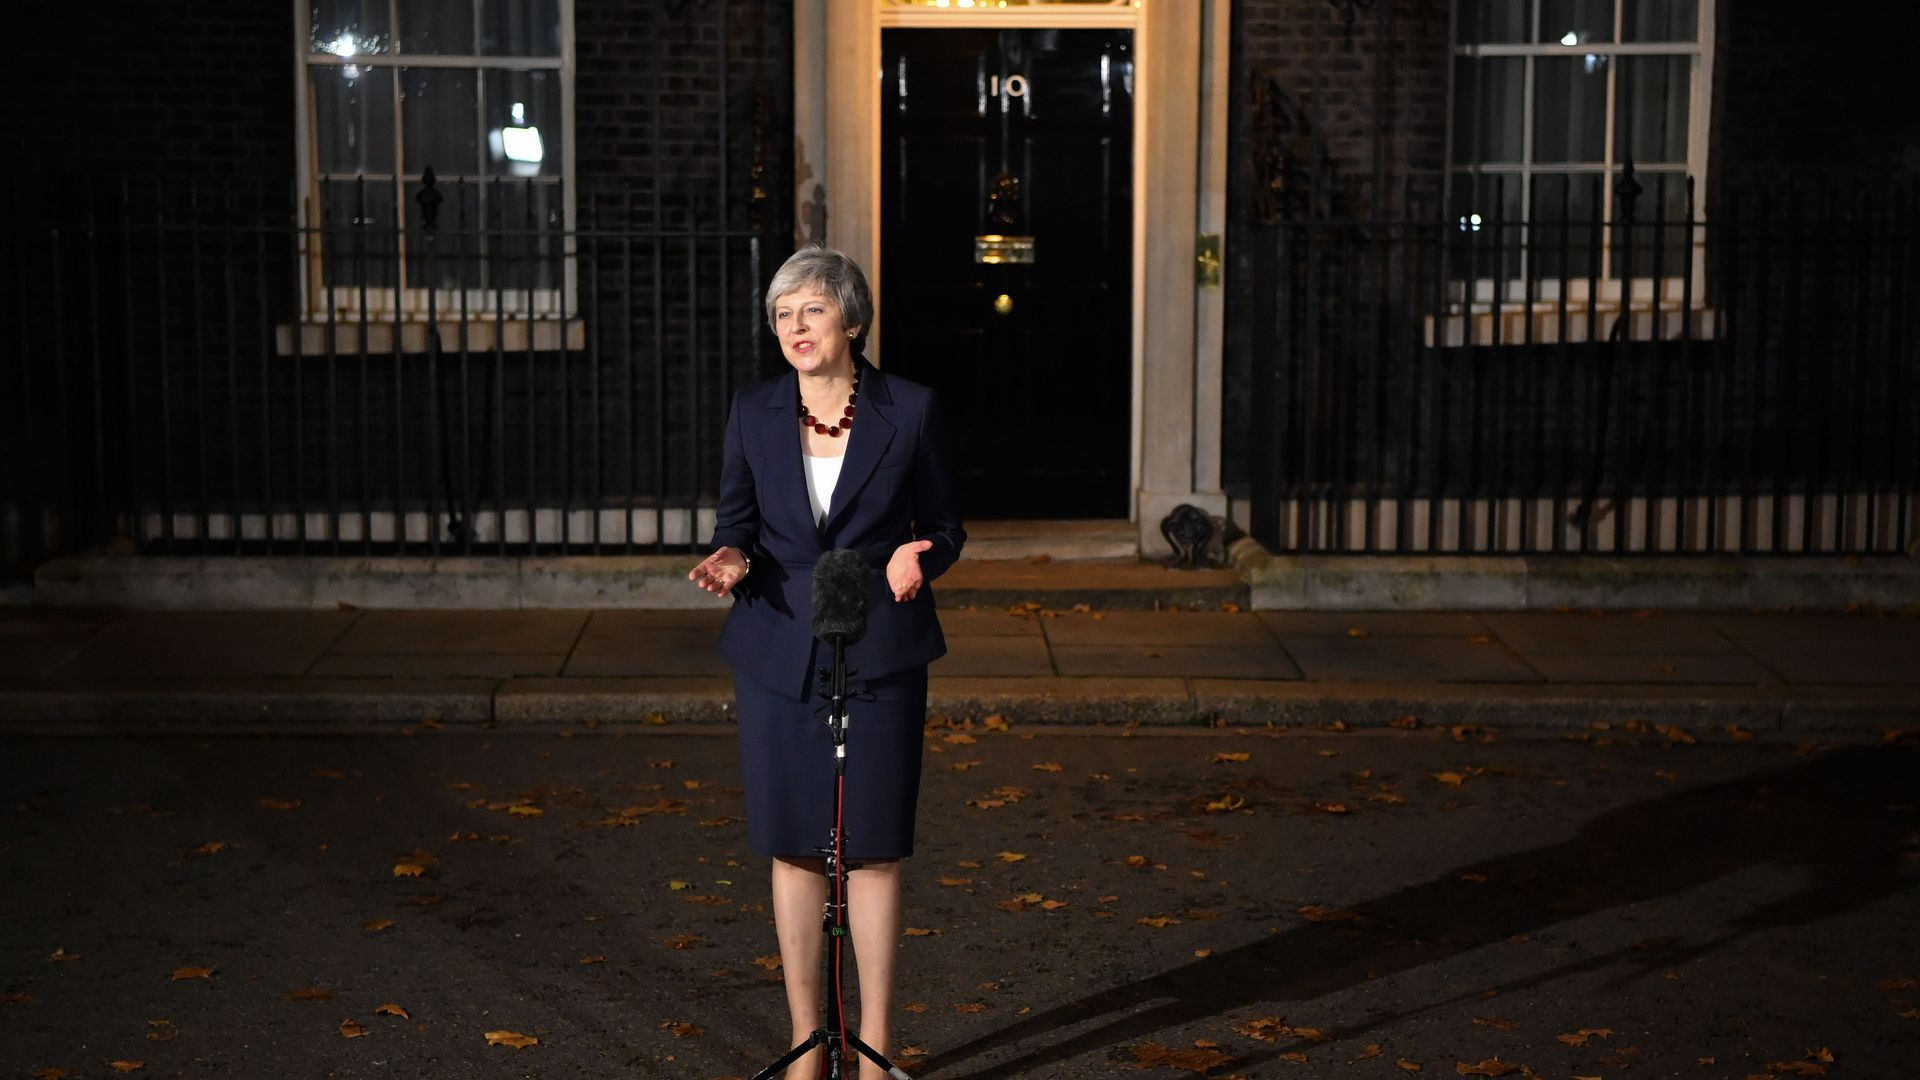 Theresa May stands in front of 10 Downing Street in London